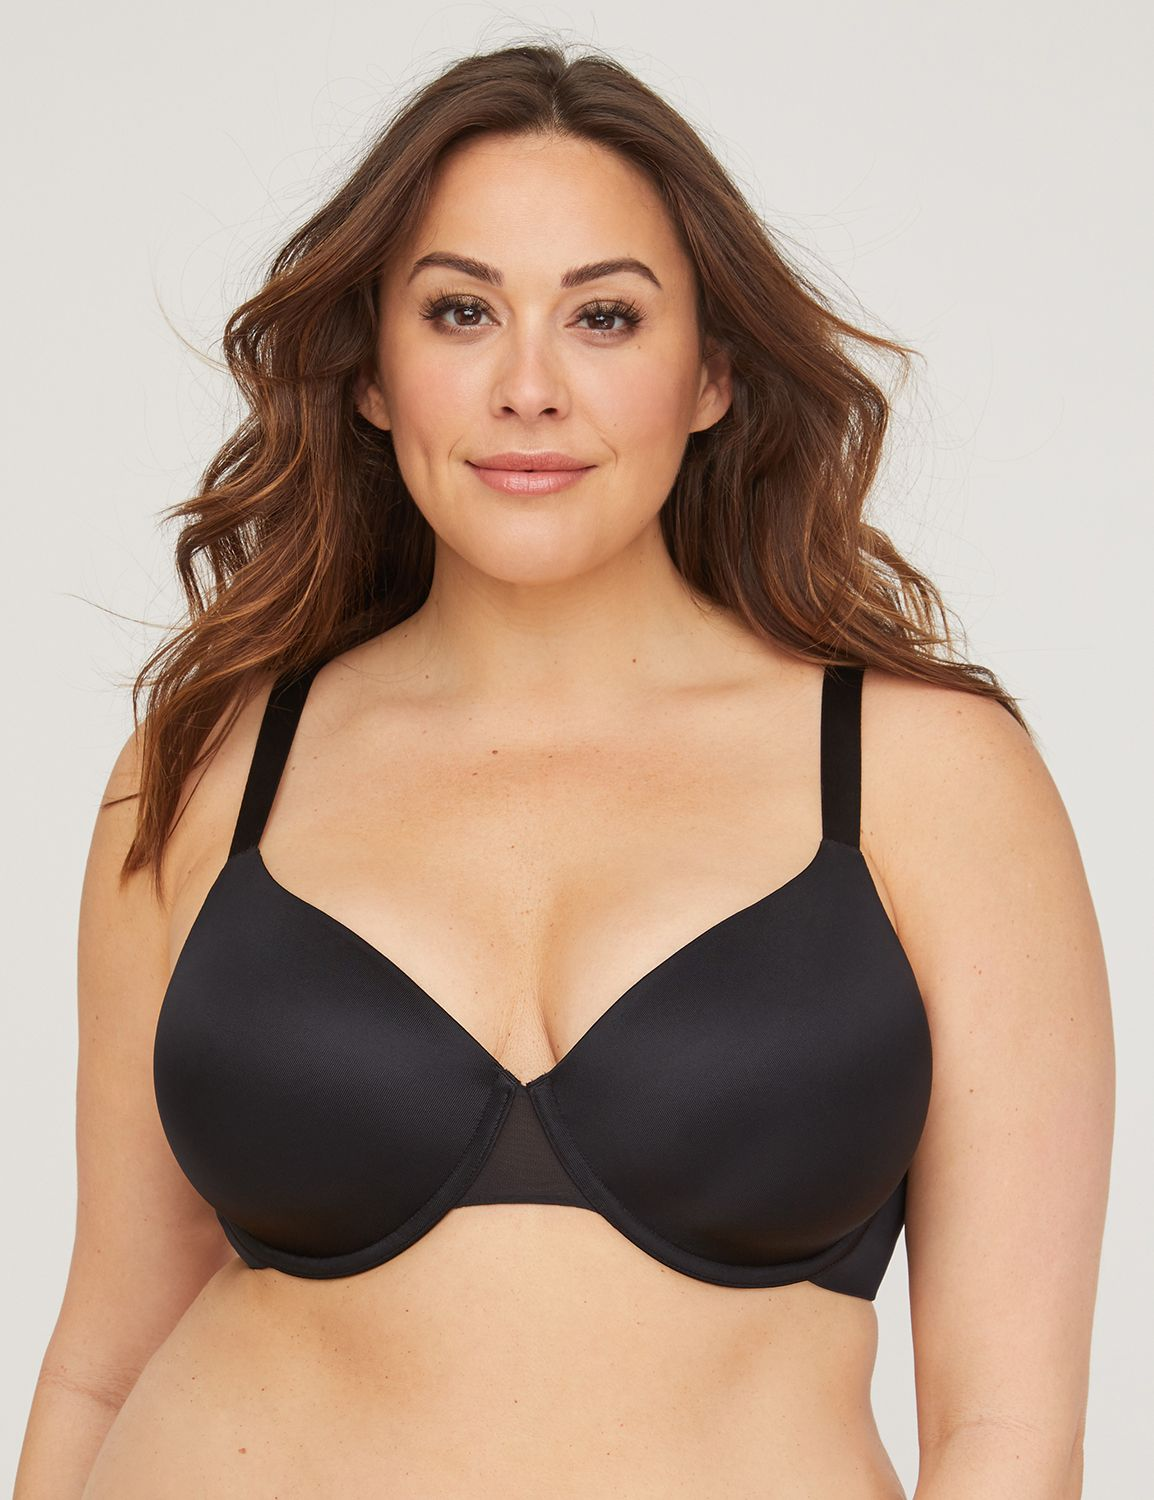 Underwire Perfect Fit T-Shirt Bra Underwire Perfect Fit T-Shirt Bra MP-201332929